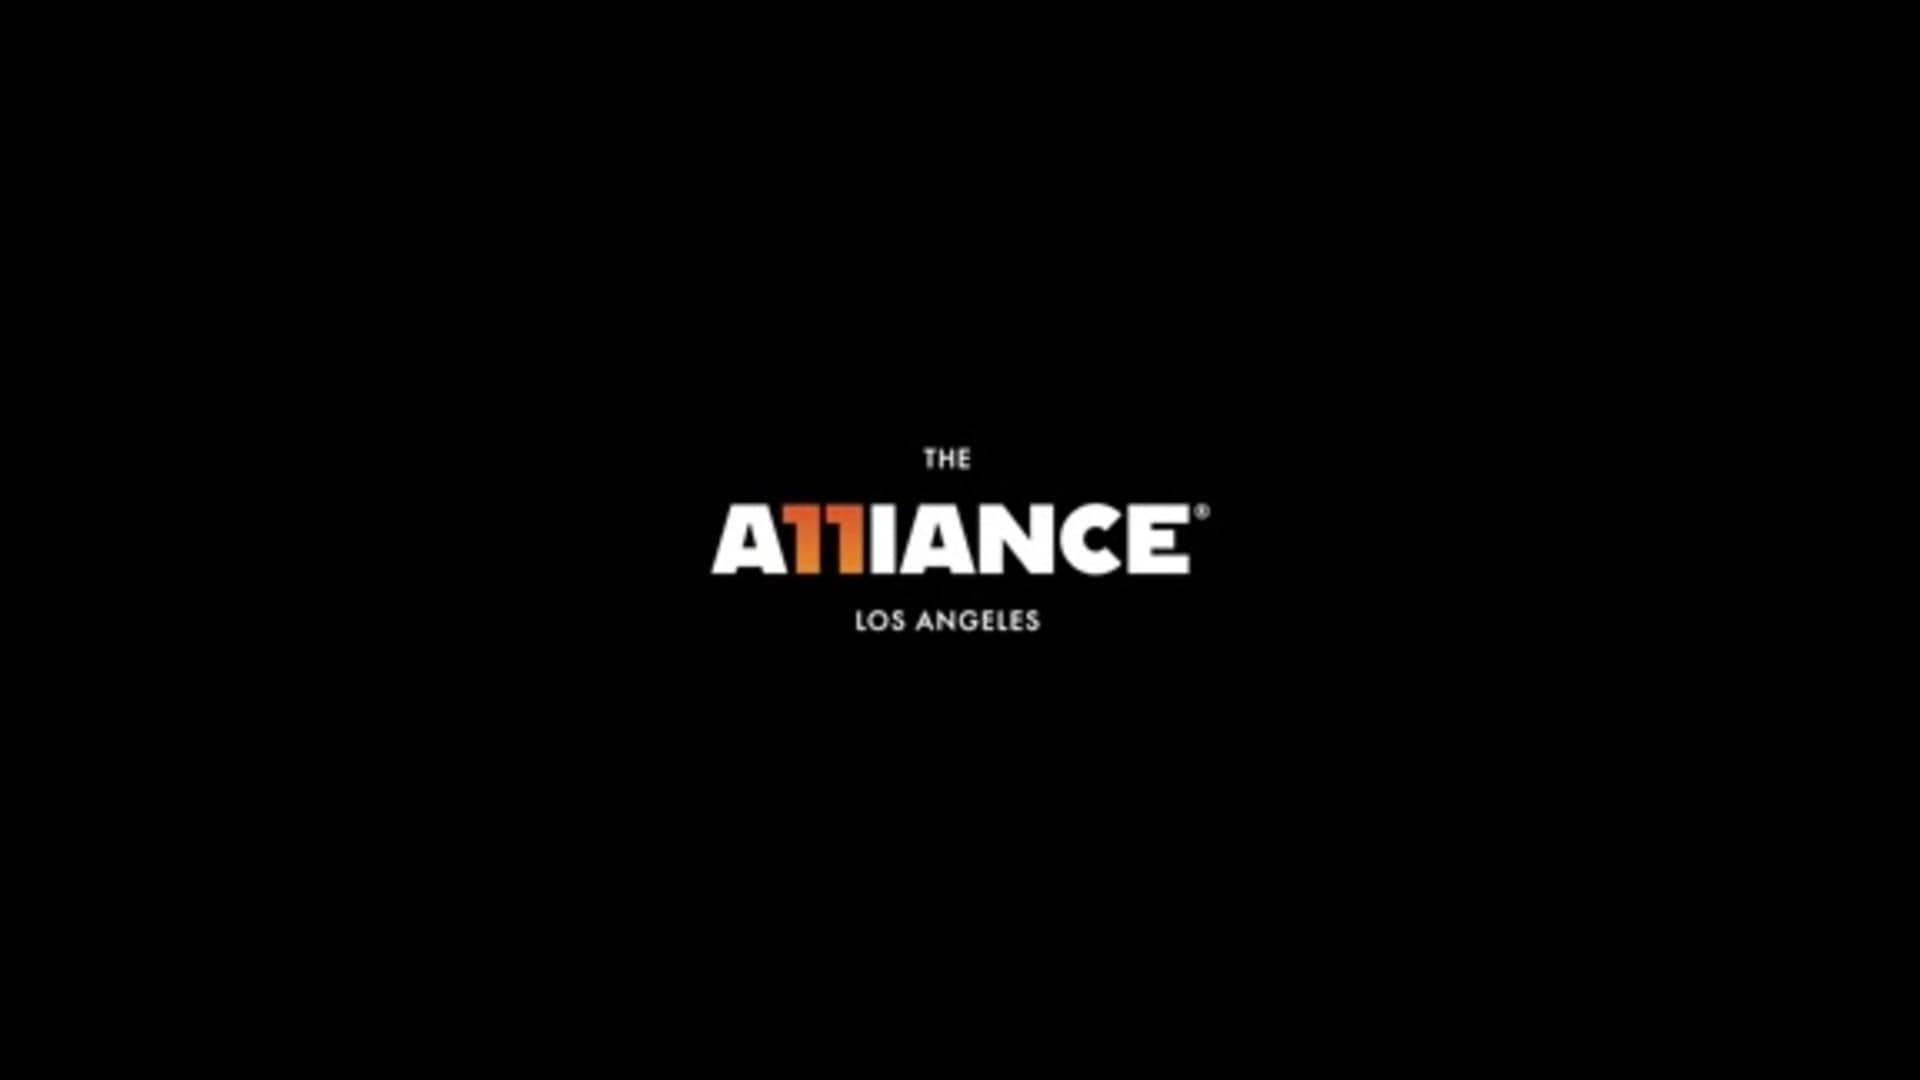 The Alliance LA: 11 Teams Unite for Social Justice